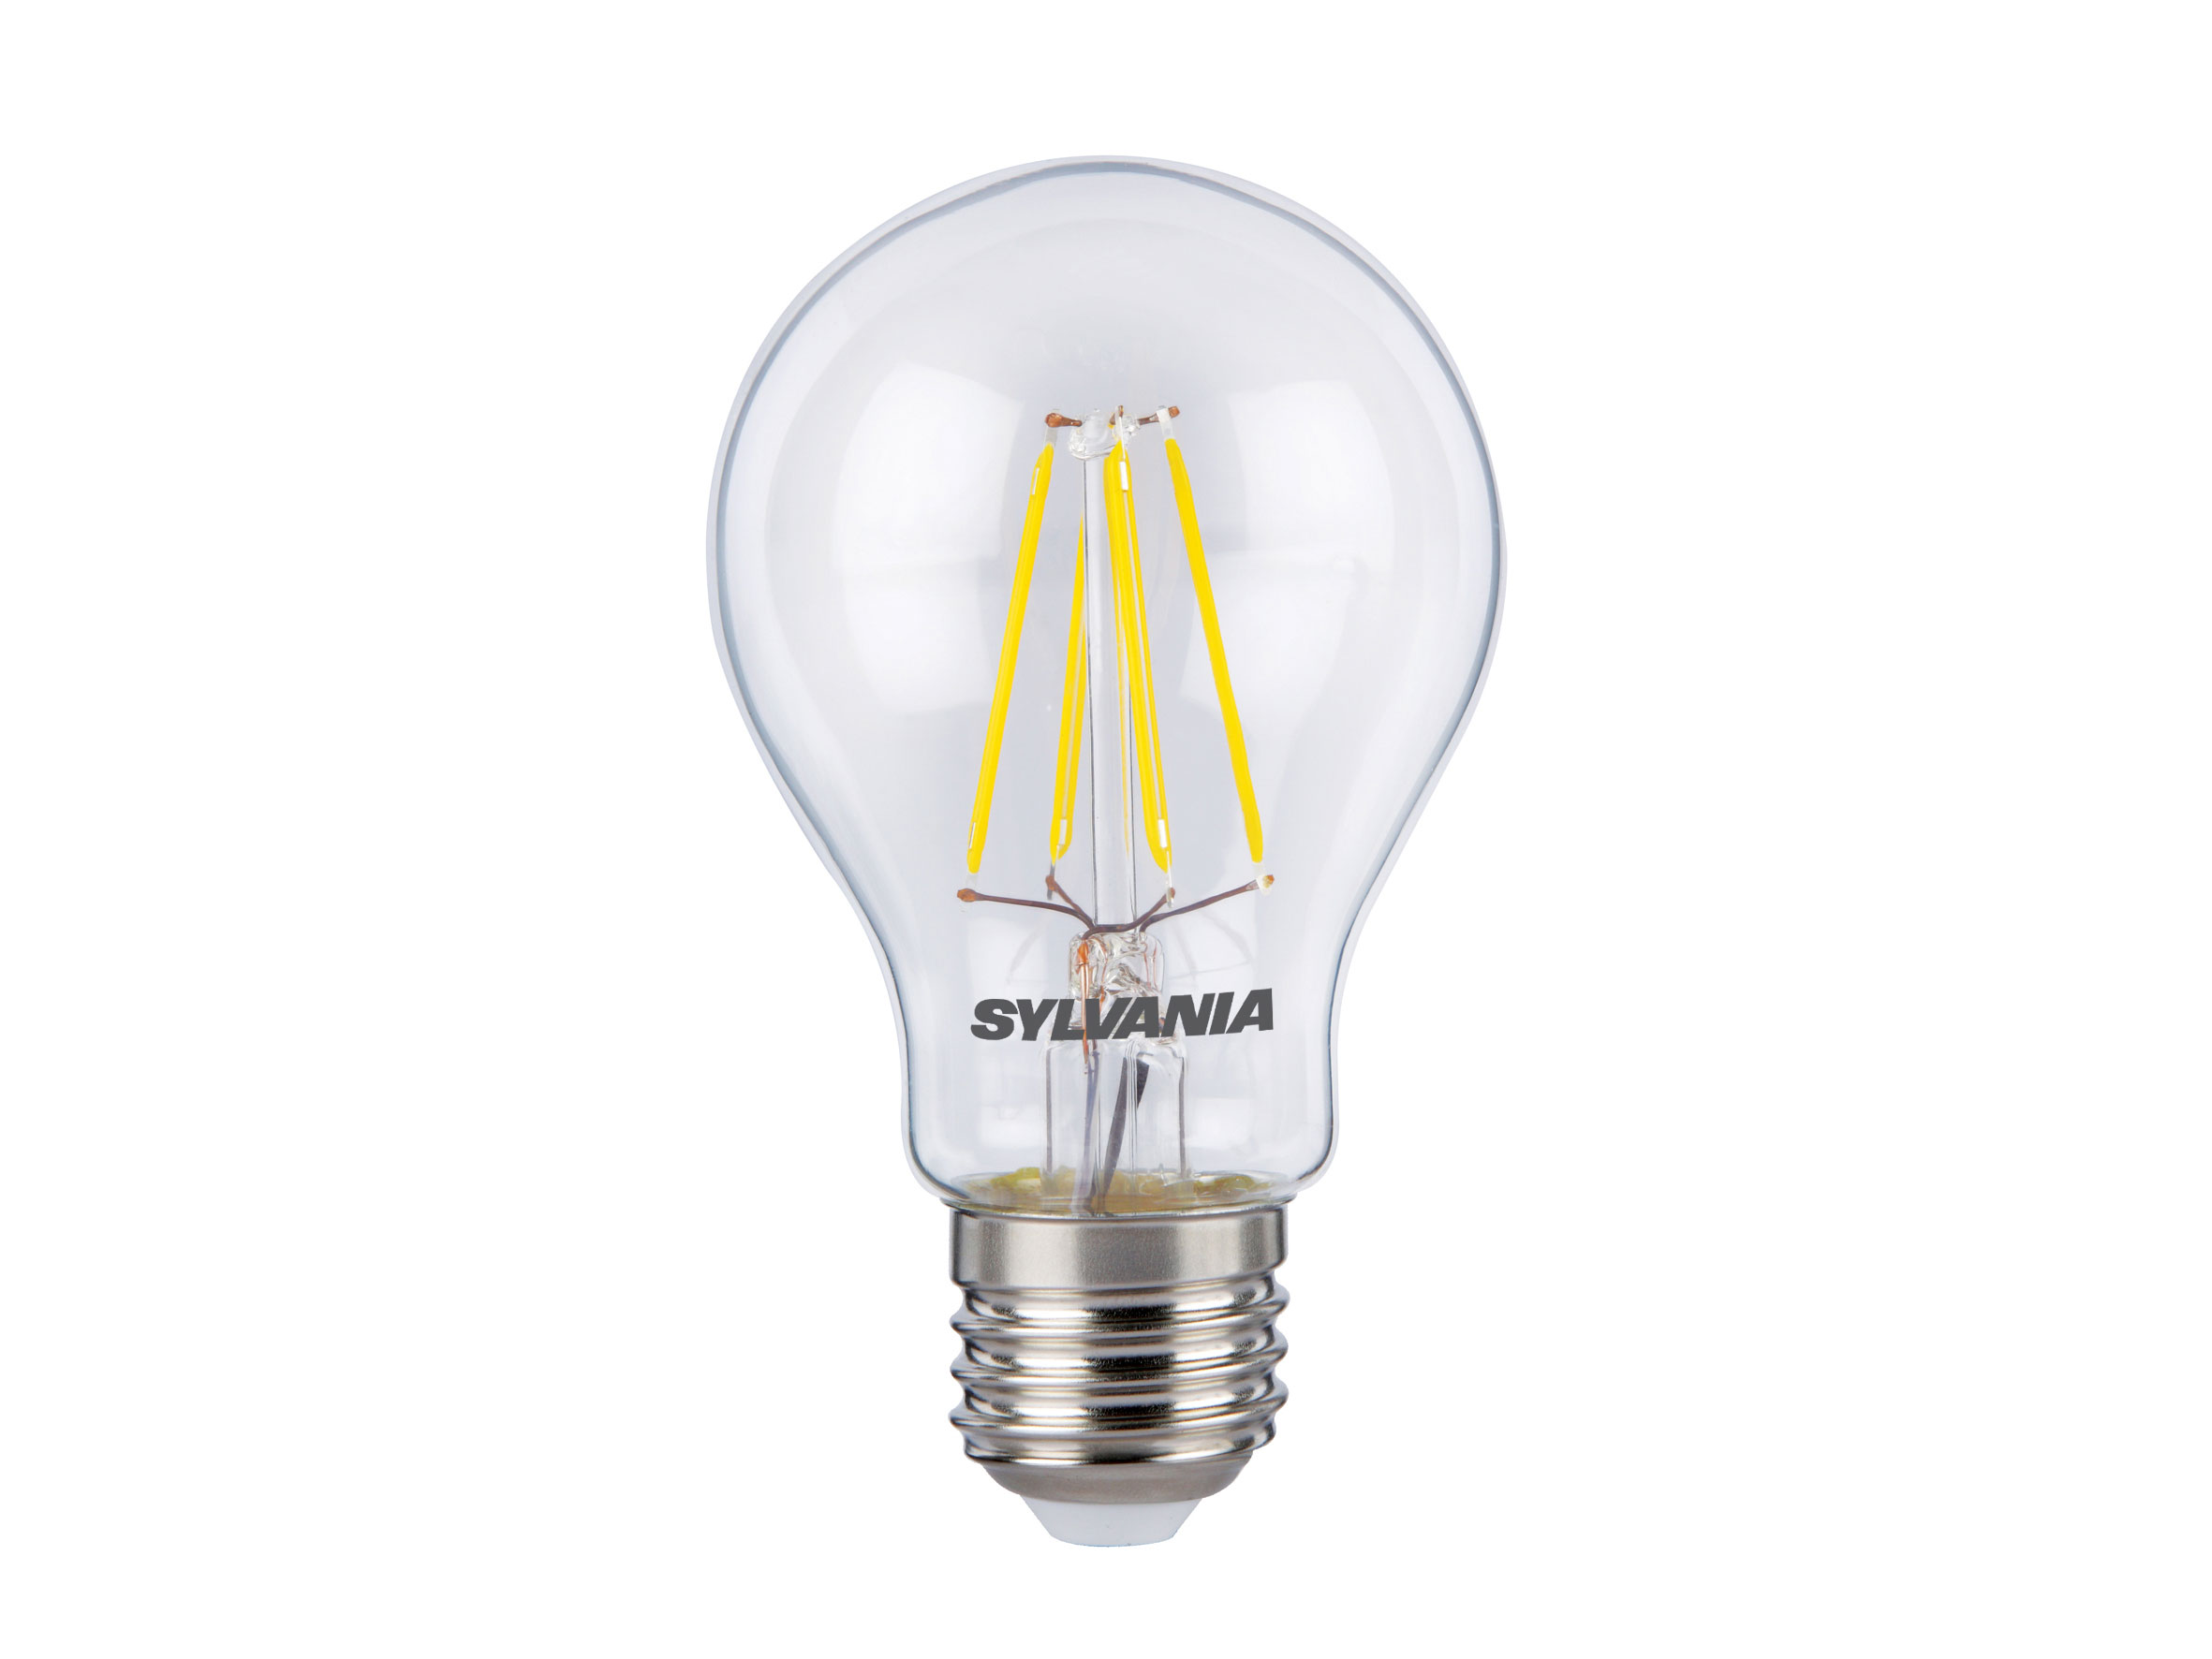 Sylvania 5W LED GLS traditional light bulb E27 ES warm white 2700K non-dimmable Thumbnail 1